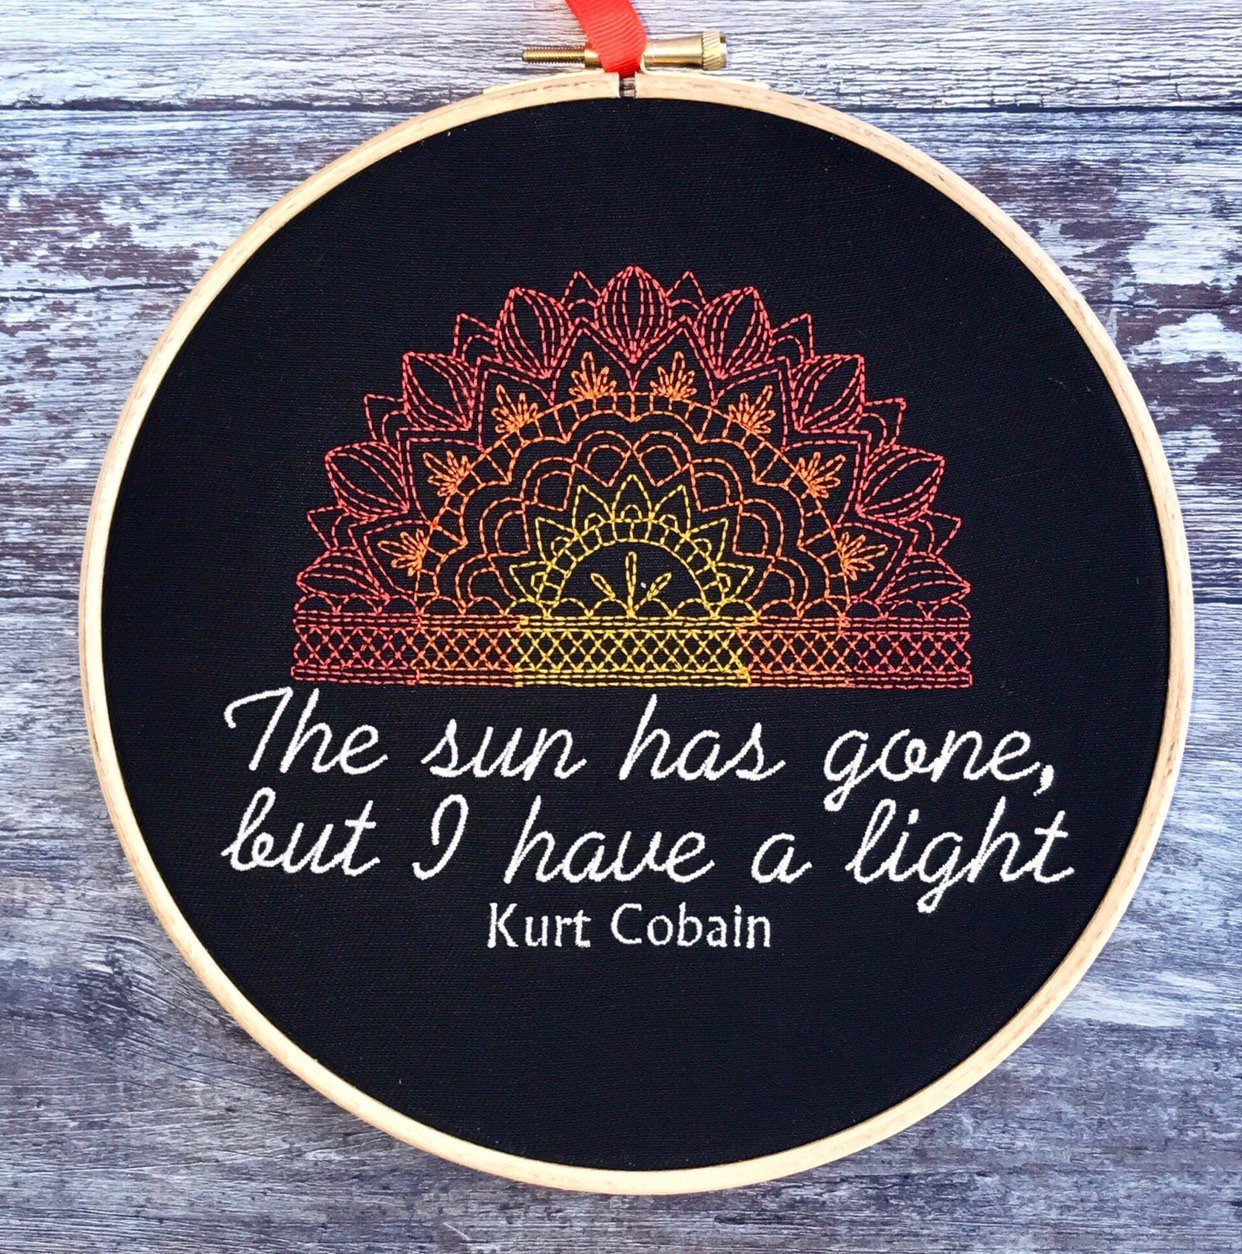 The sun has gone but I have a light Kurt Cobain quote, Embroidery hoop art